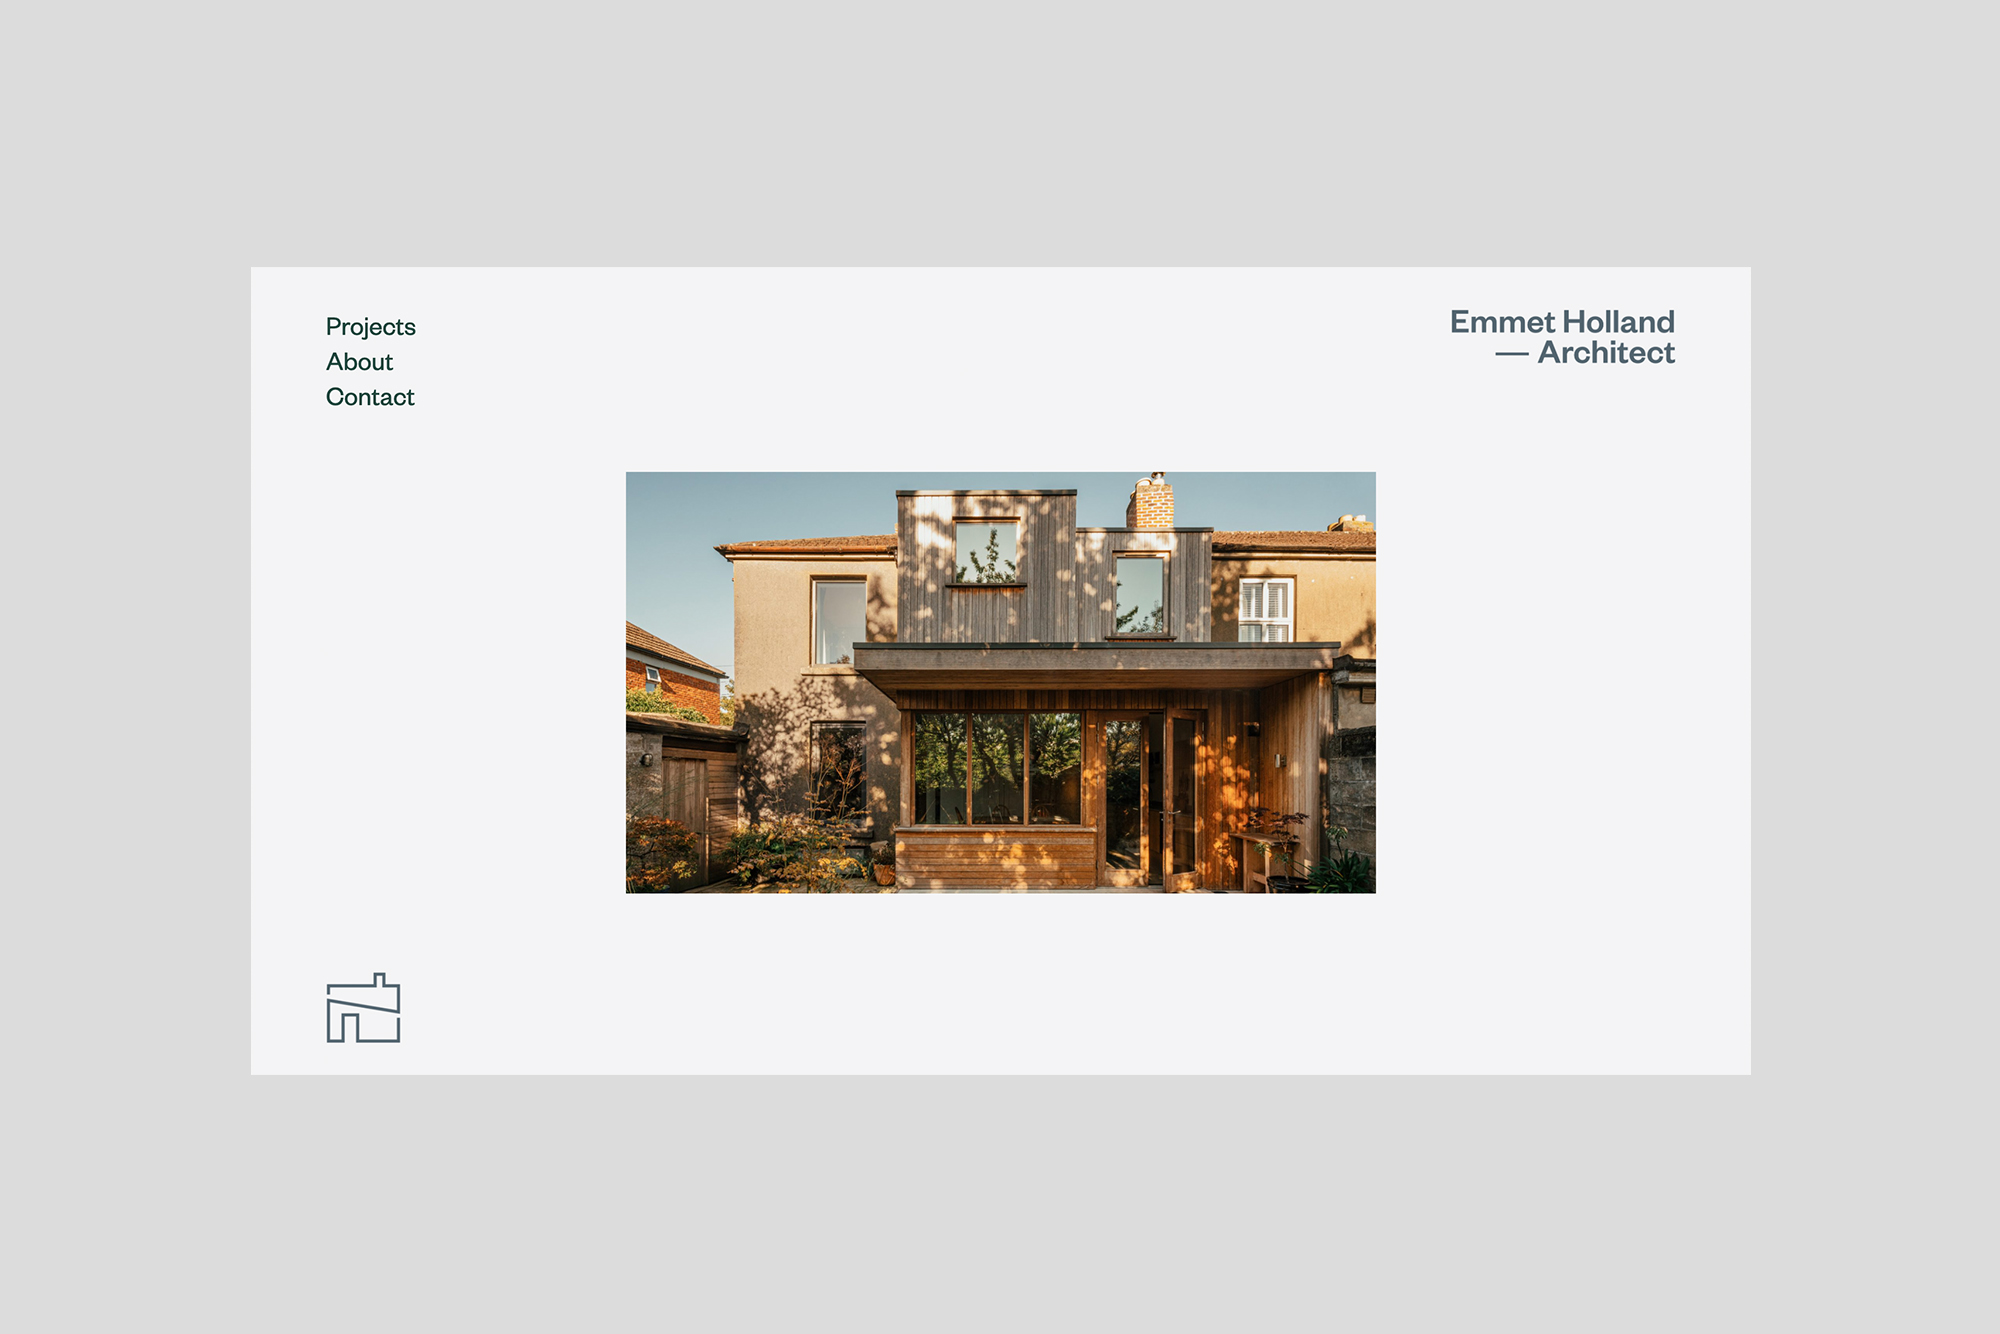 Cover image: Emmet Holland Architect – Website